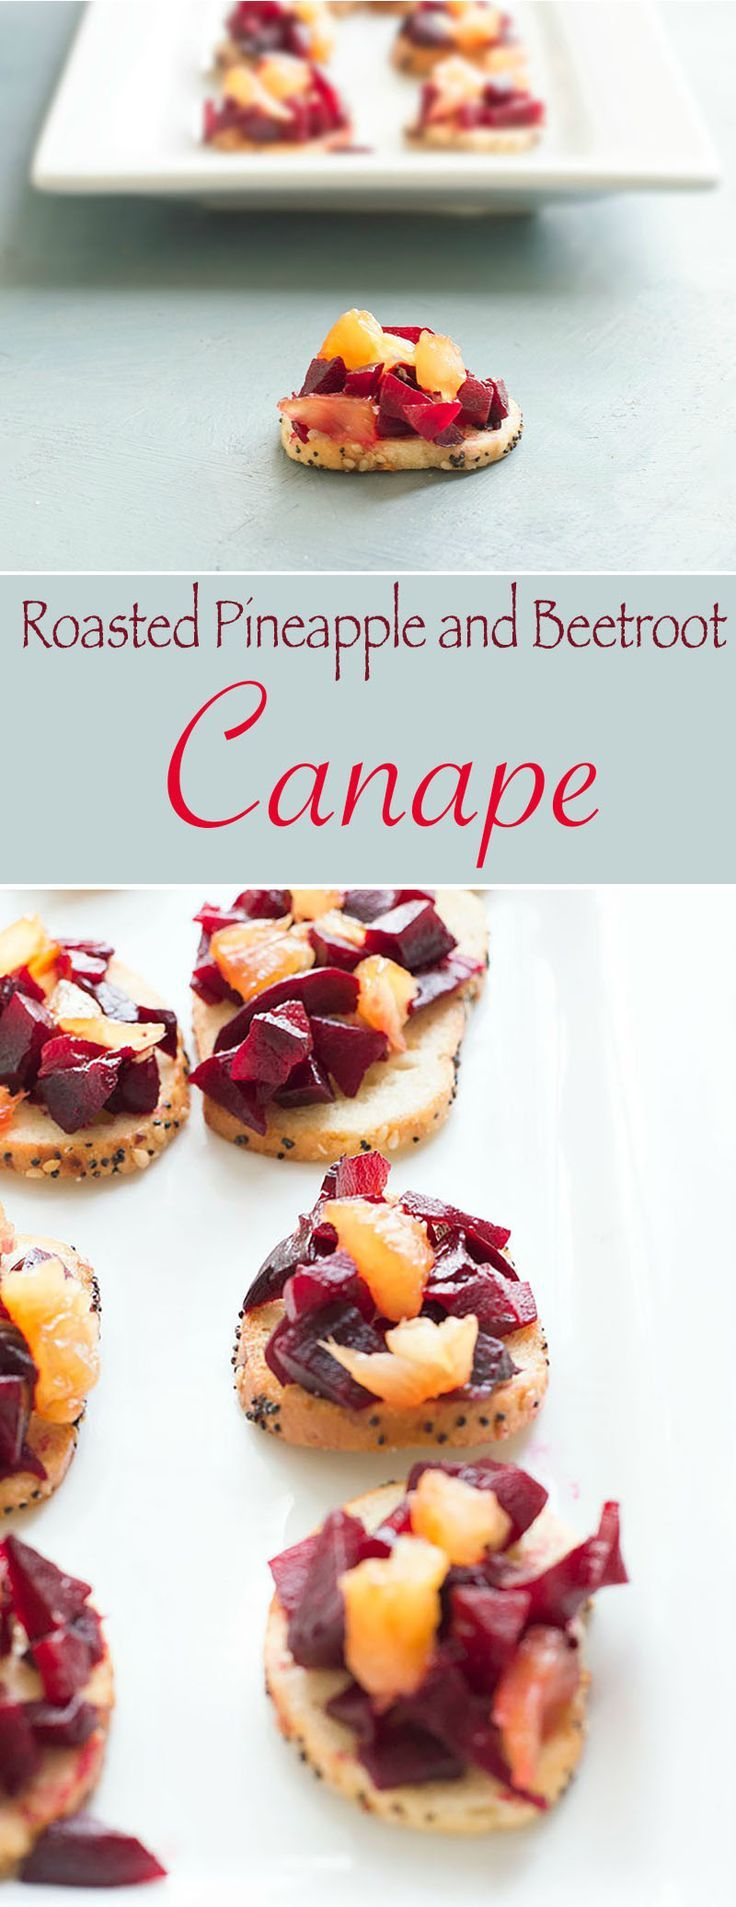 100 canapes recipes on pinterest canapes christmas for Canape toppings ideas